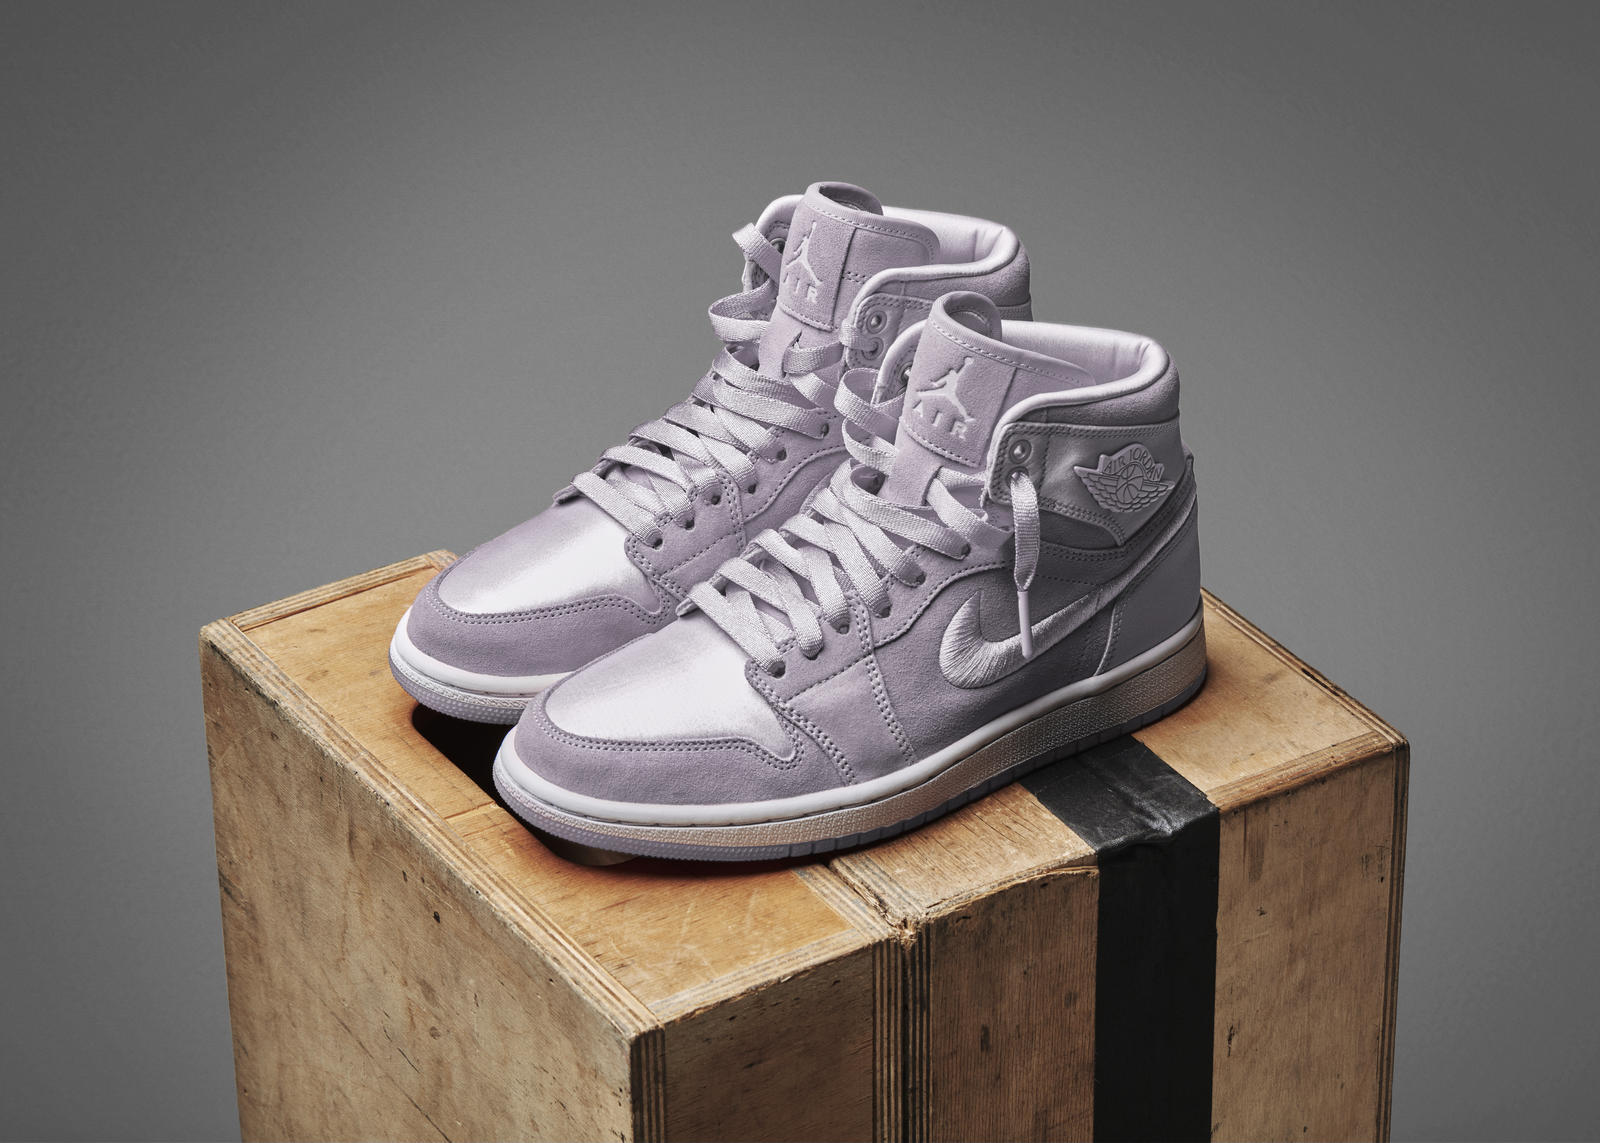 Jordan Brand Reveals Spring 2018 Women s Collection - Nike News 90c258341a2a7